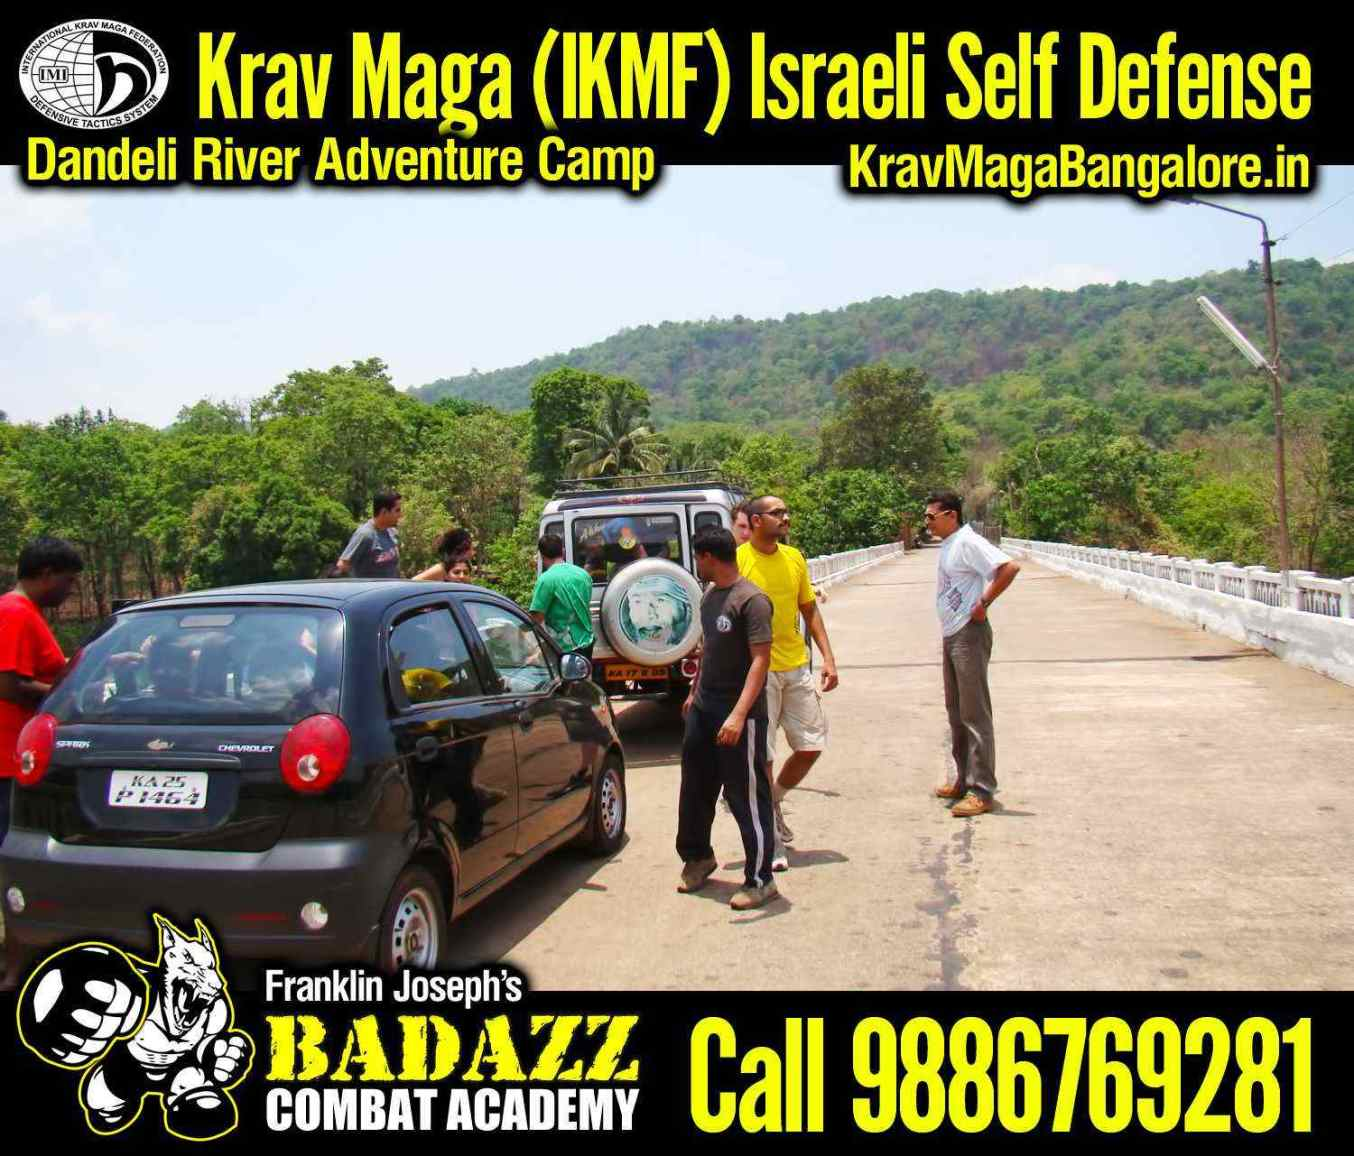 BadAzz Krav Maga Military Combat Academy River Adventure Camp